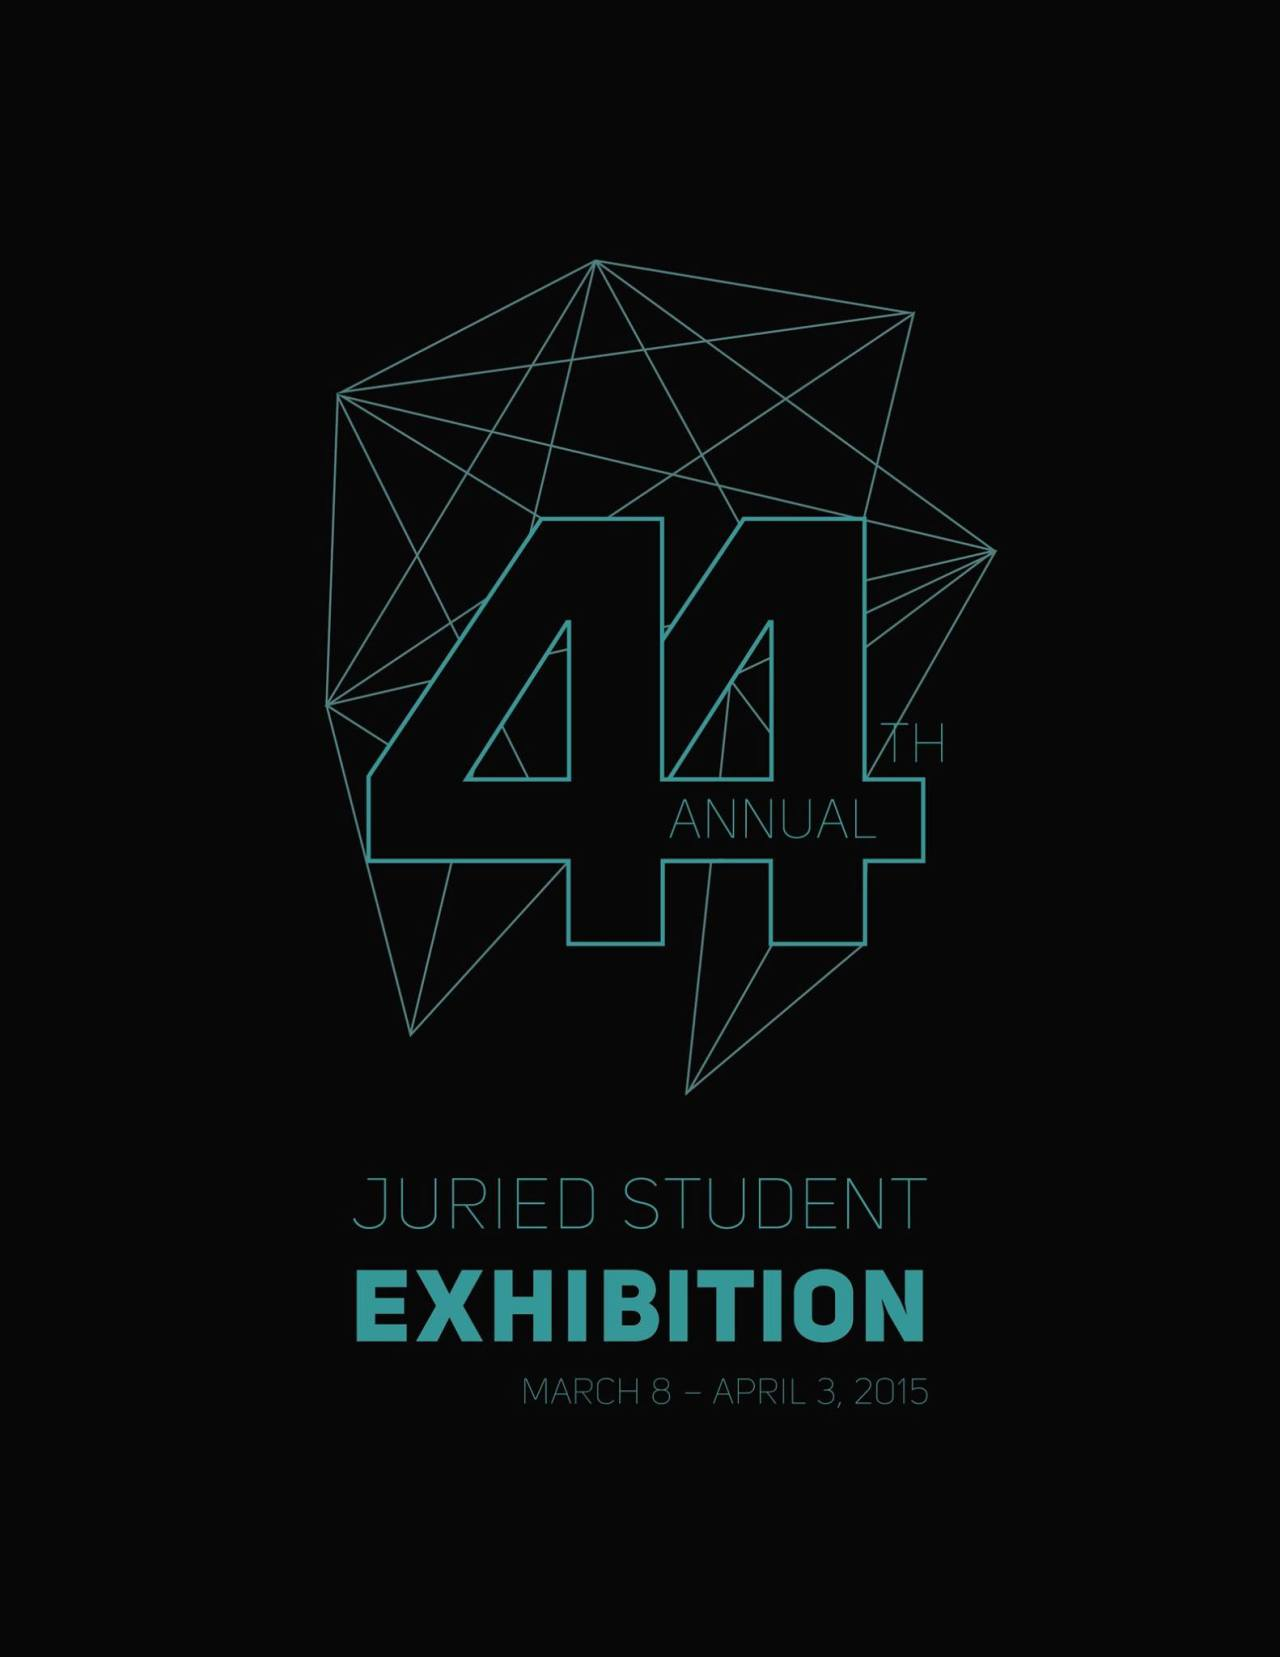 Join us for the opening reception of the 44th Annual Juried Student Exhibition on Sunday, March 8 from 1-3PM. Awards will be announced at 2PM by President and Mrs. Maxwell and Dean Joe Lenz!